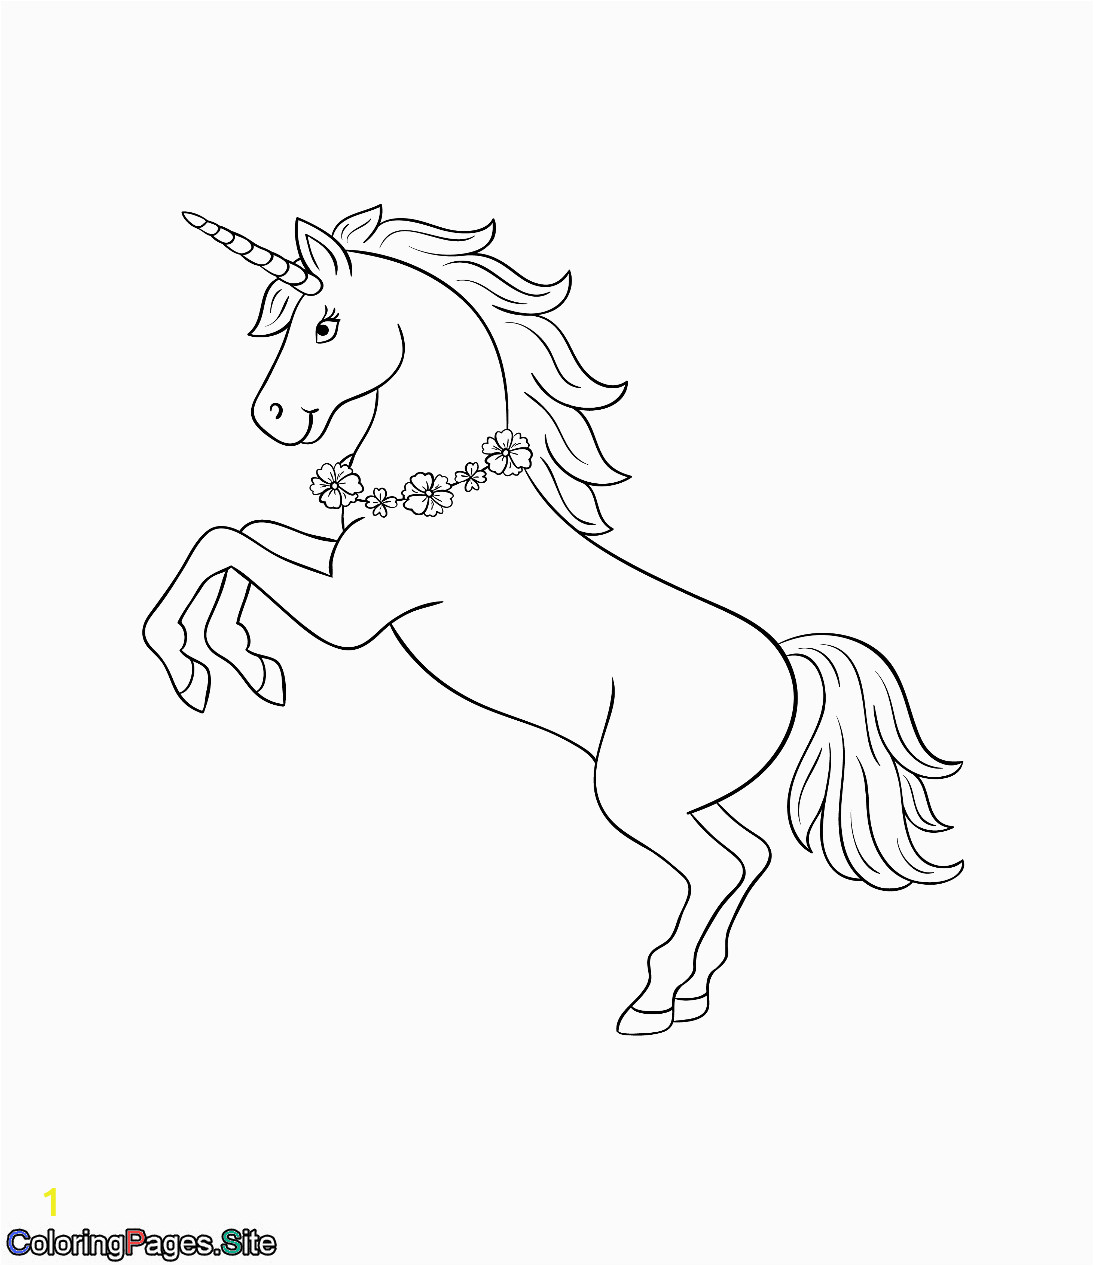 Unicorn with Wings Coloring Page Unicorn with A Flowers Necklace Coloring Page